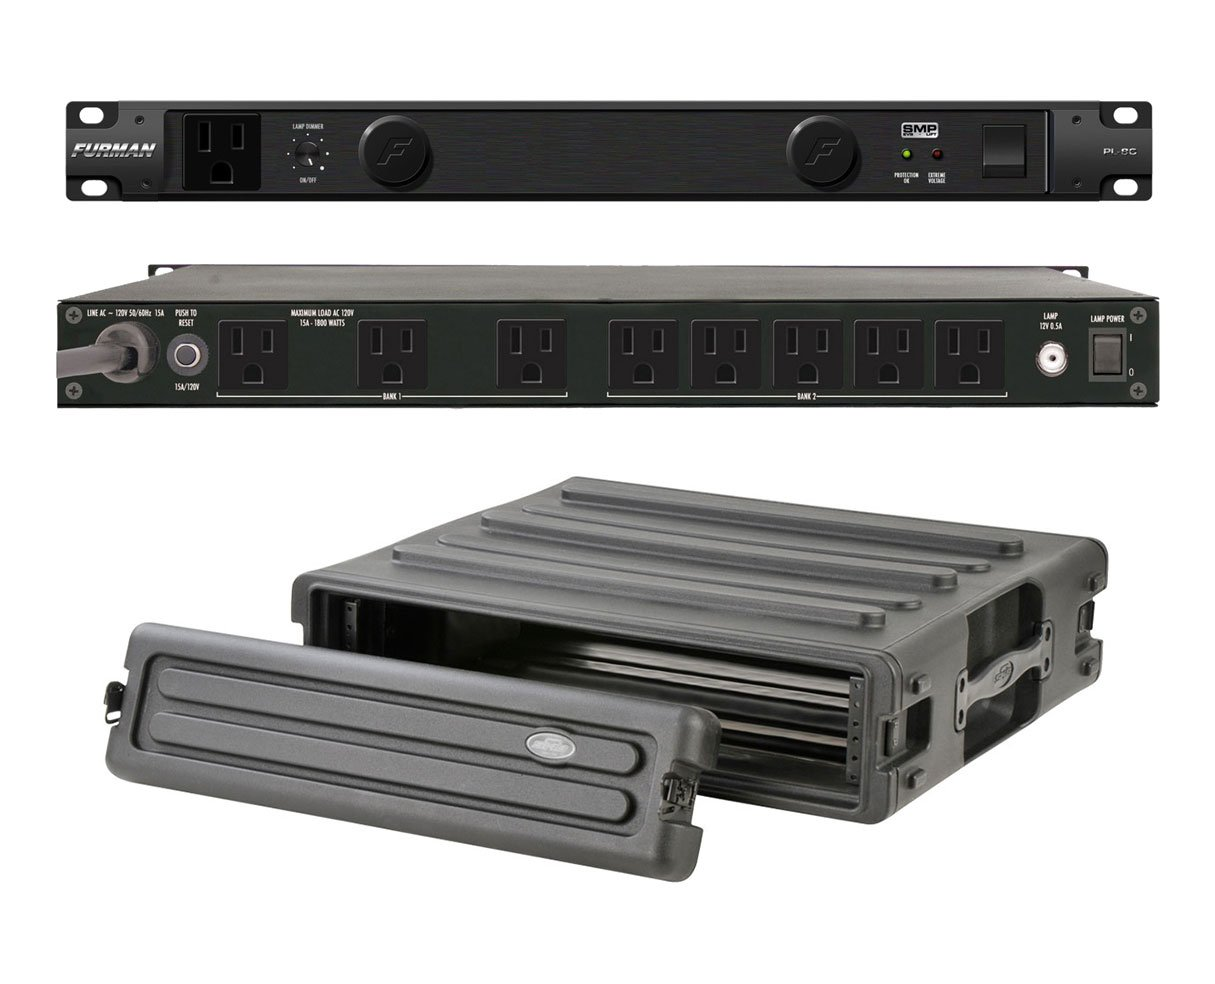 Furman PL-8 C Rack Mount Power Conditioner + SKB 1SKB-R2U Roto Molded 2U Rack